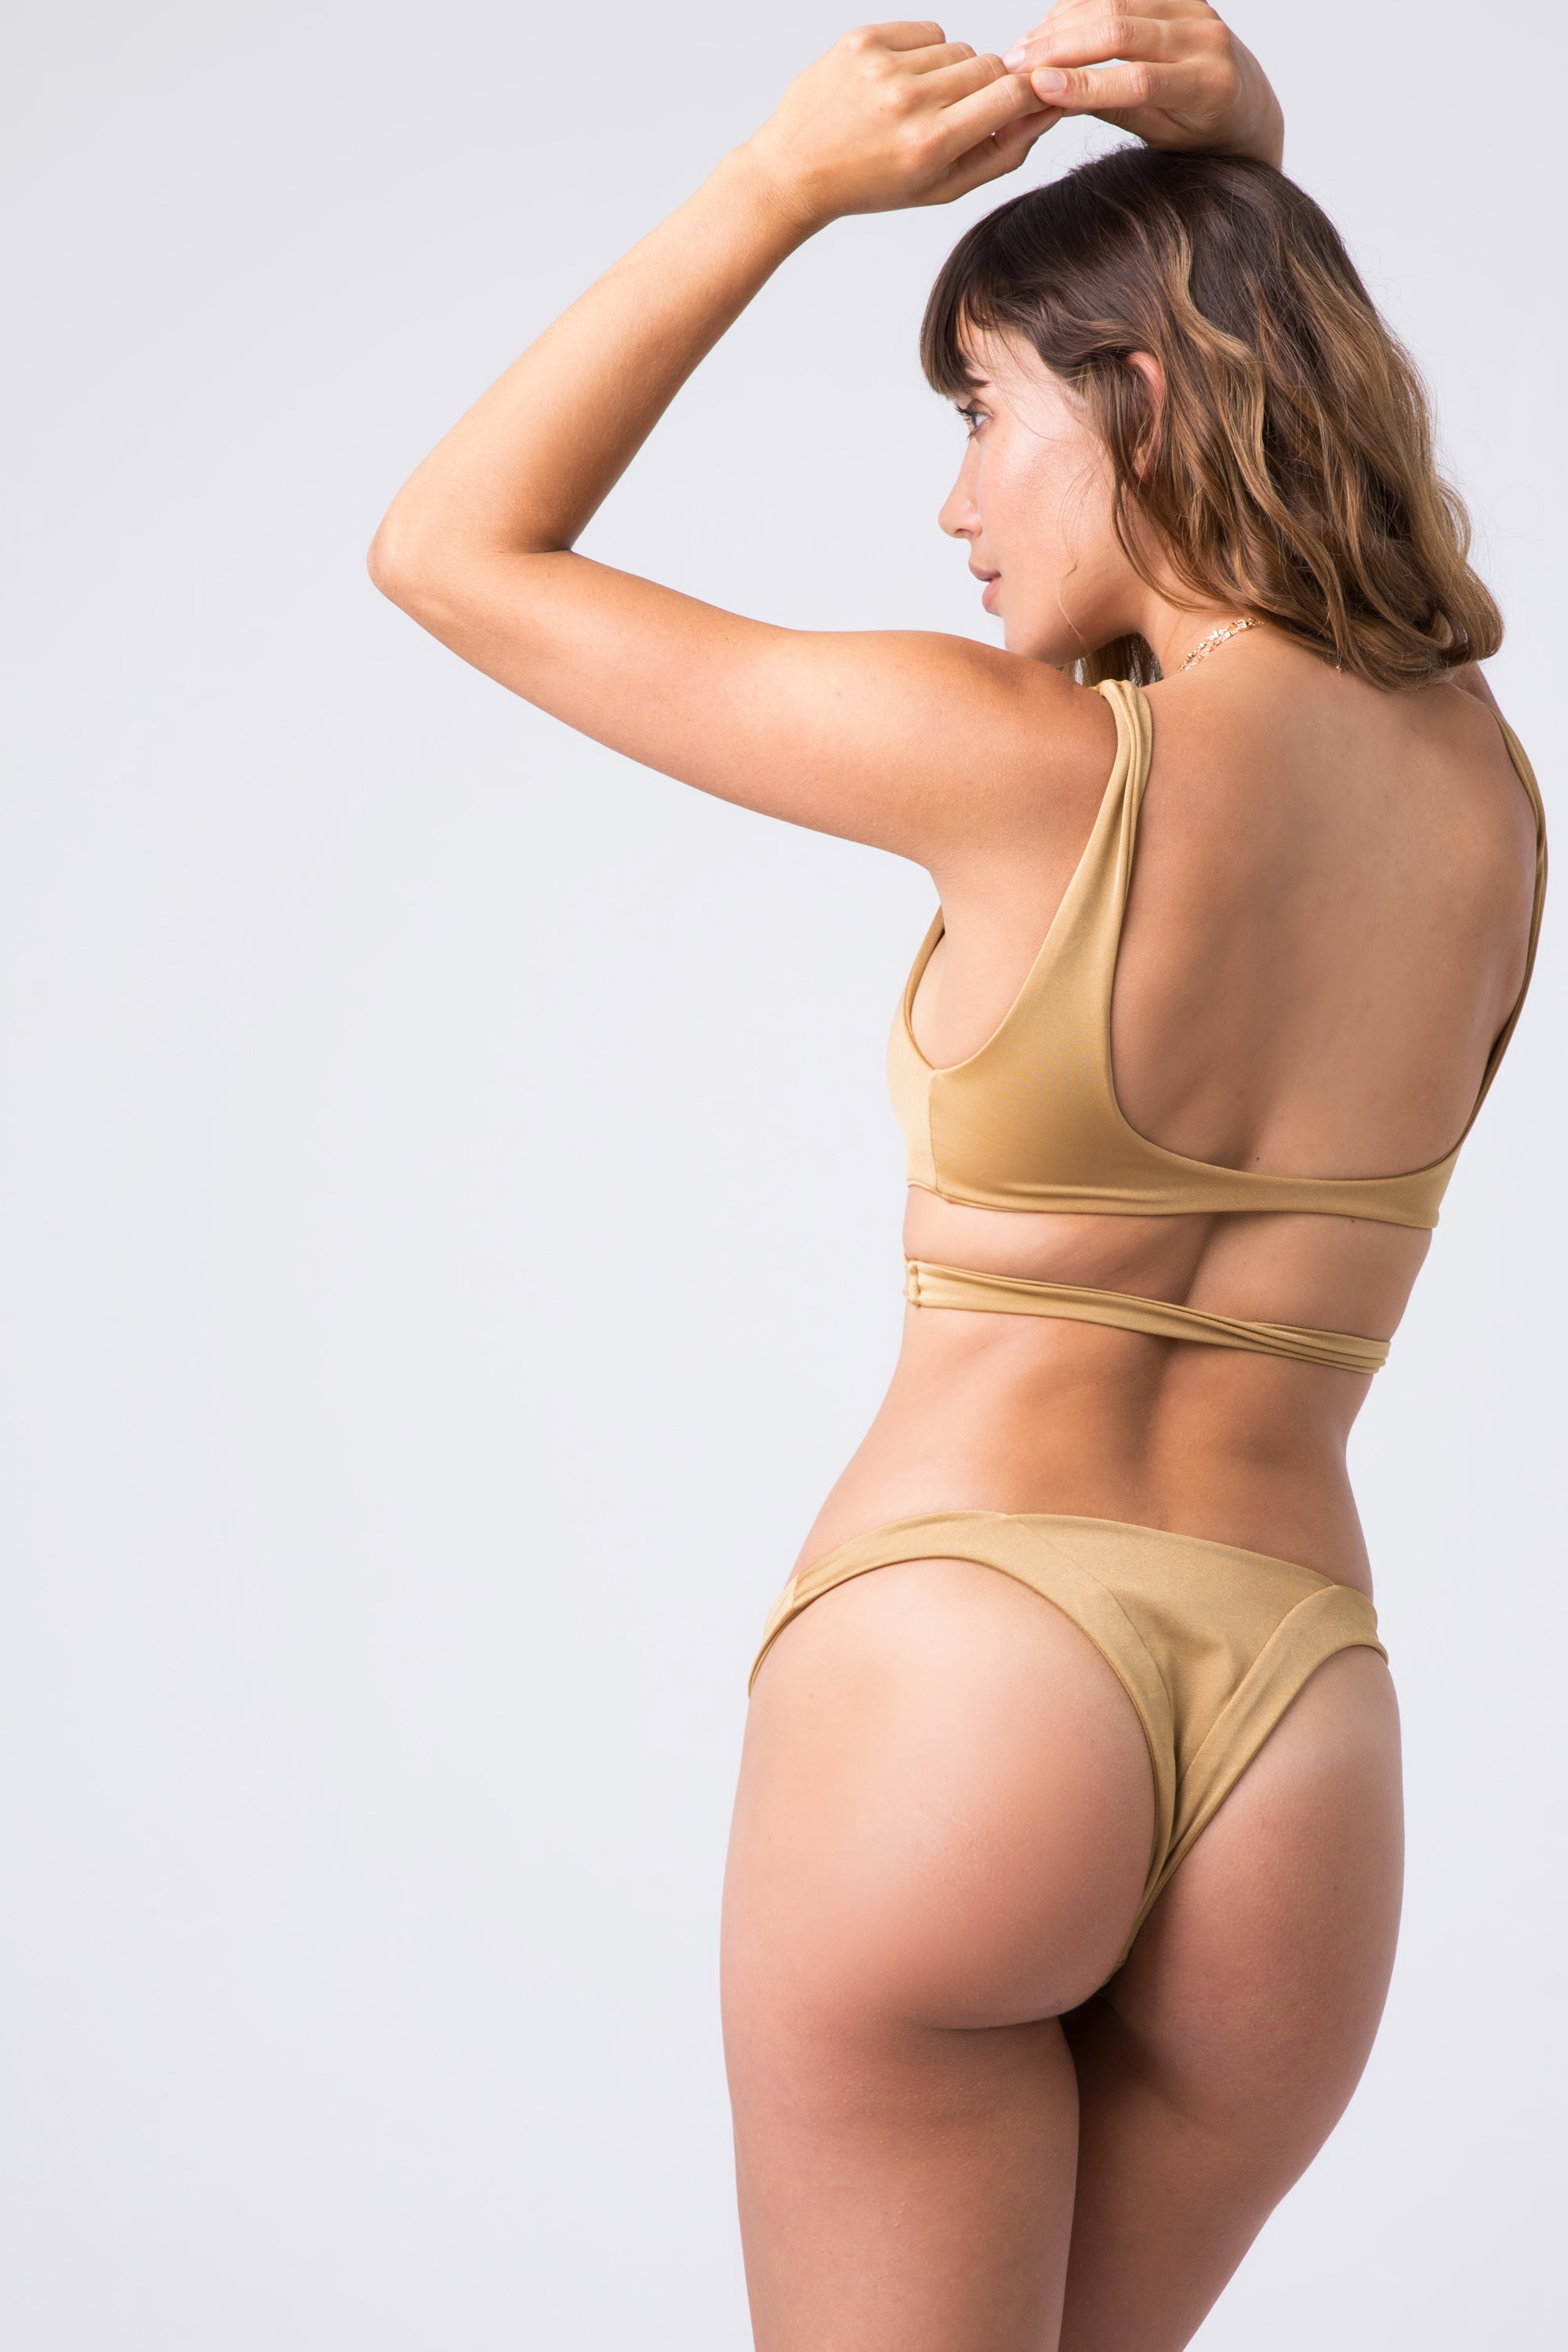 INDAH Tenille Banded Bottom - Cairo Bikini Bottom | Cairo| Indah Tenille Banded Bottom - Cairo Back View Mid Rise Bottom Solid Band High Cut Leg Skimpy Coverage Italian Shiny Lycra